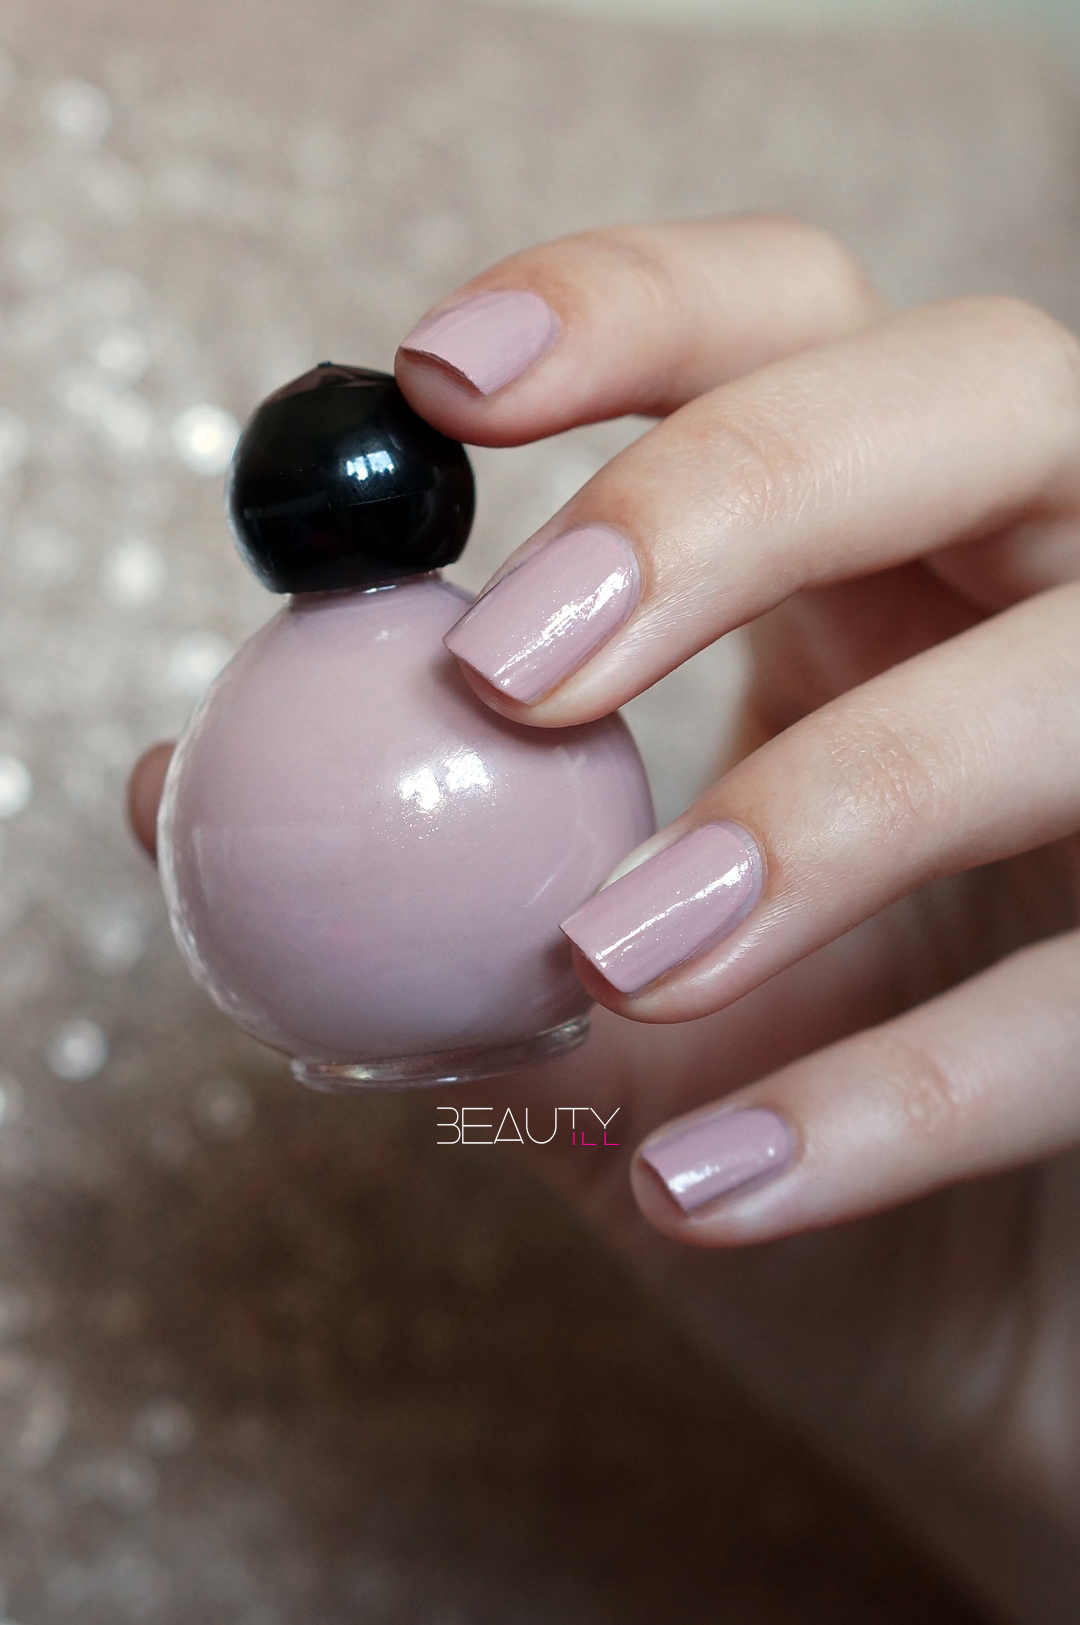 primark-nagellak-floral-scented-orchid-poppy (4)